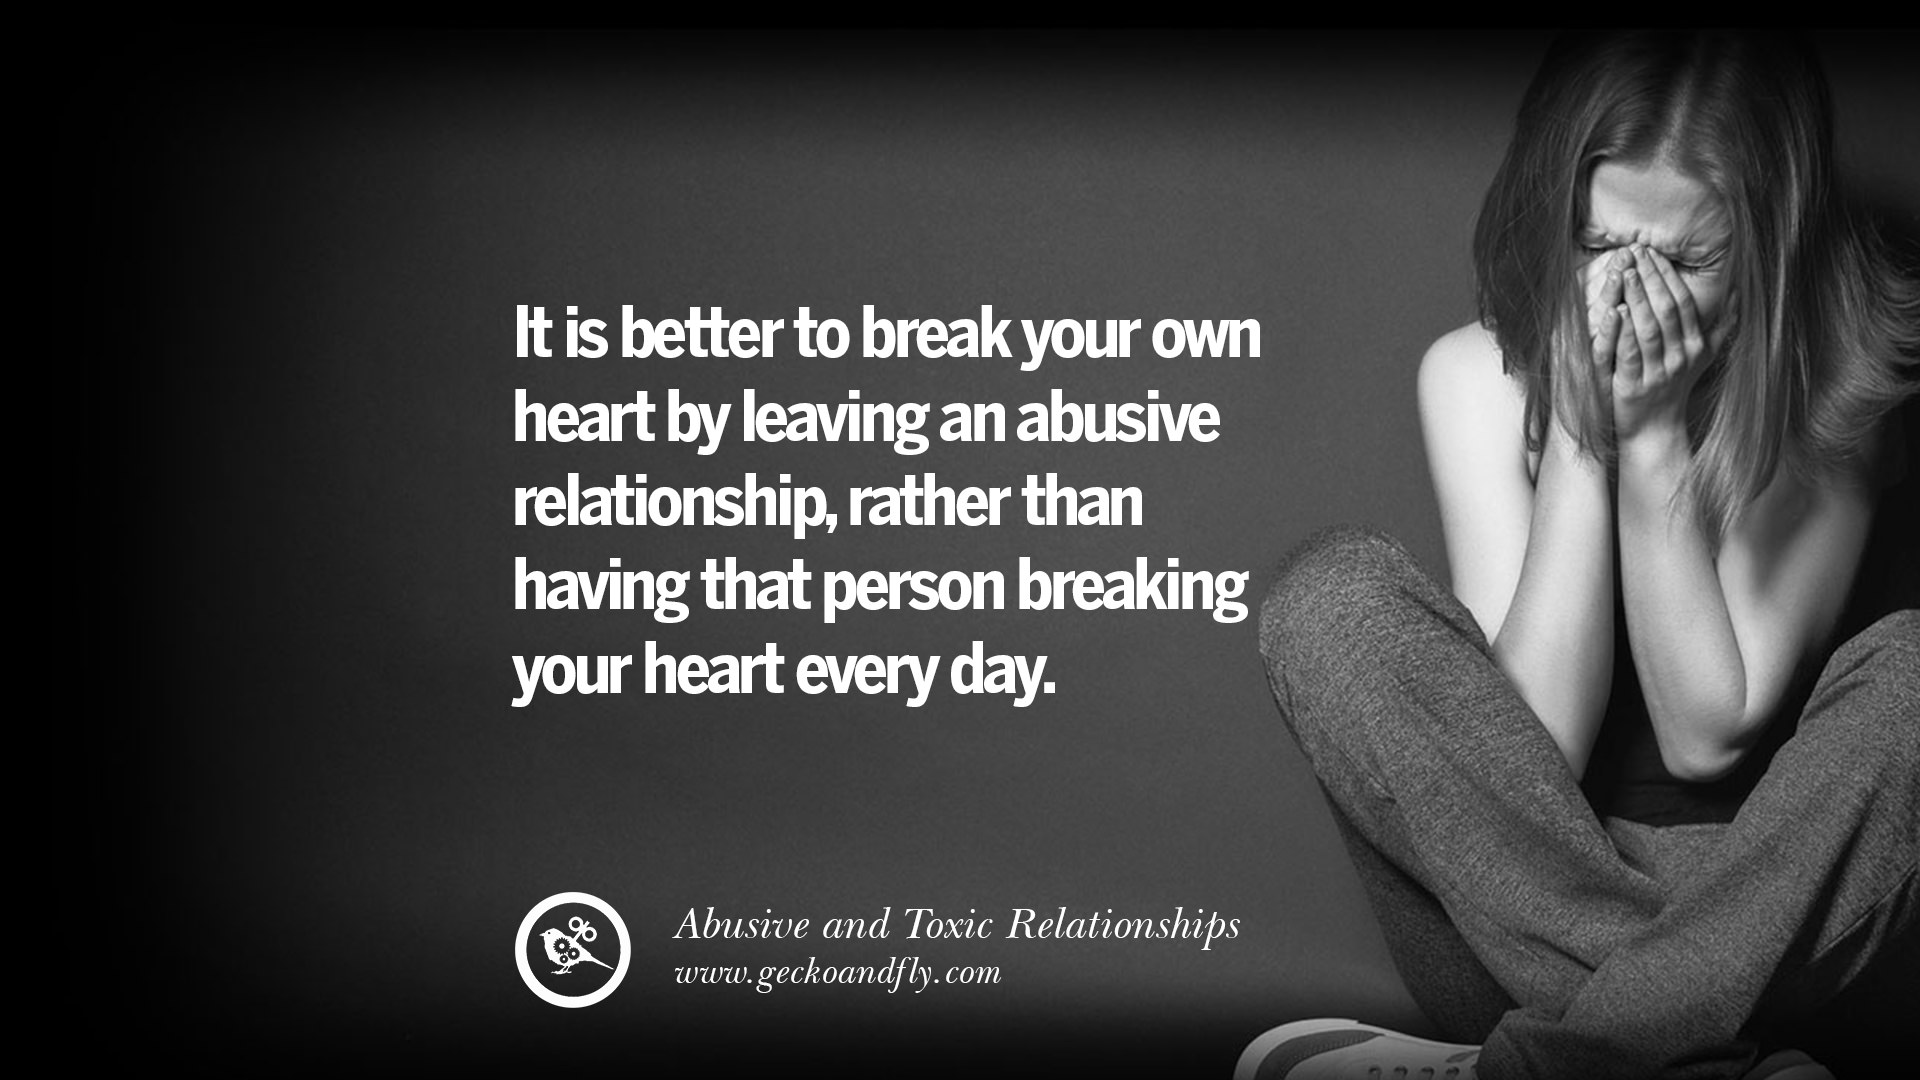 Toxic Relationship Quotes 30 Quotes On Leaving An Abusive Toxic Relationships And Be .